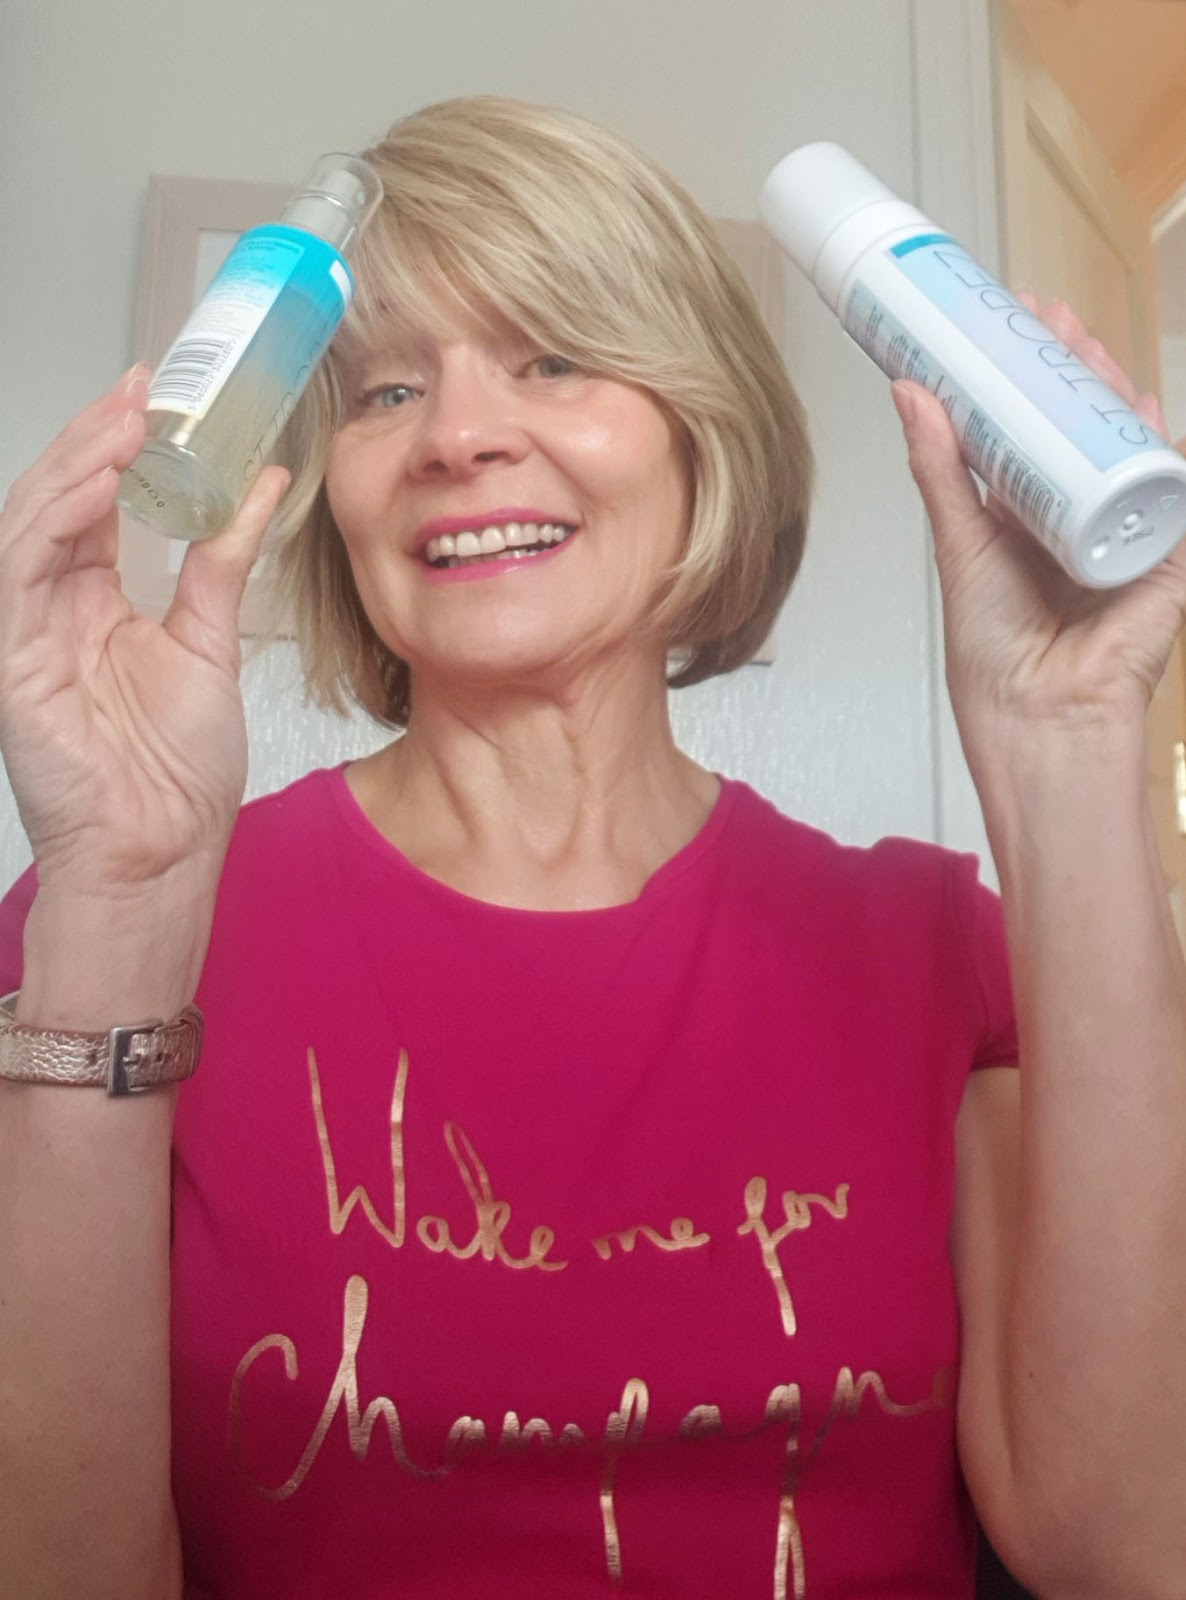 Over 50 fashion and beauty blogger Gail Hanlon with new St Tropez tanning products